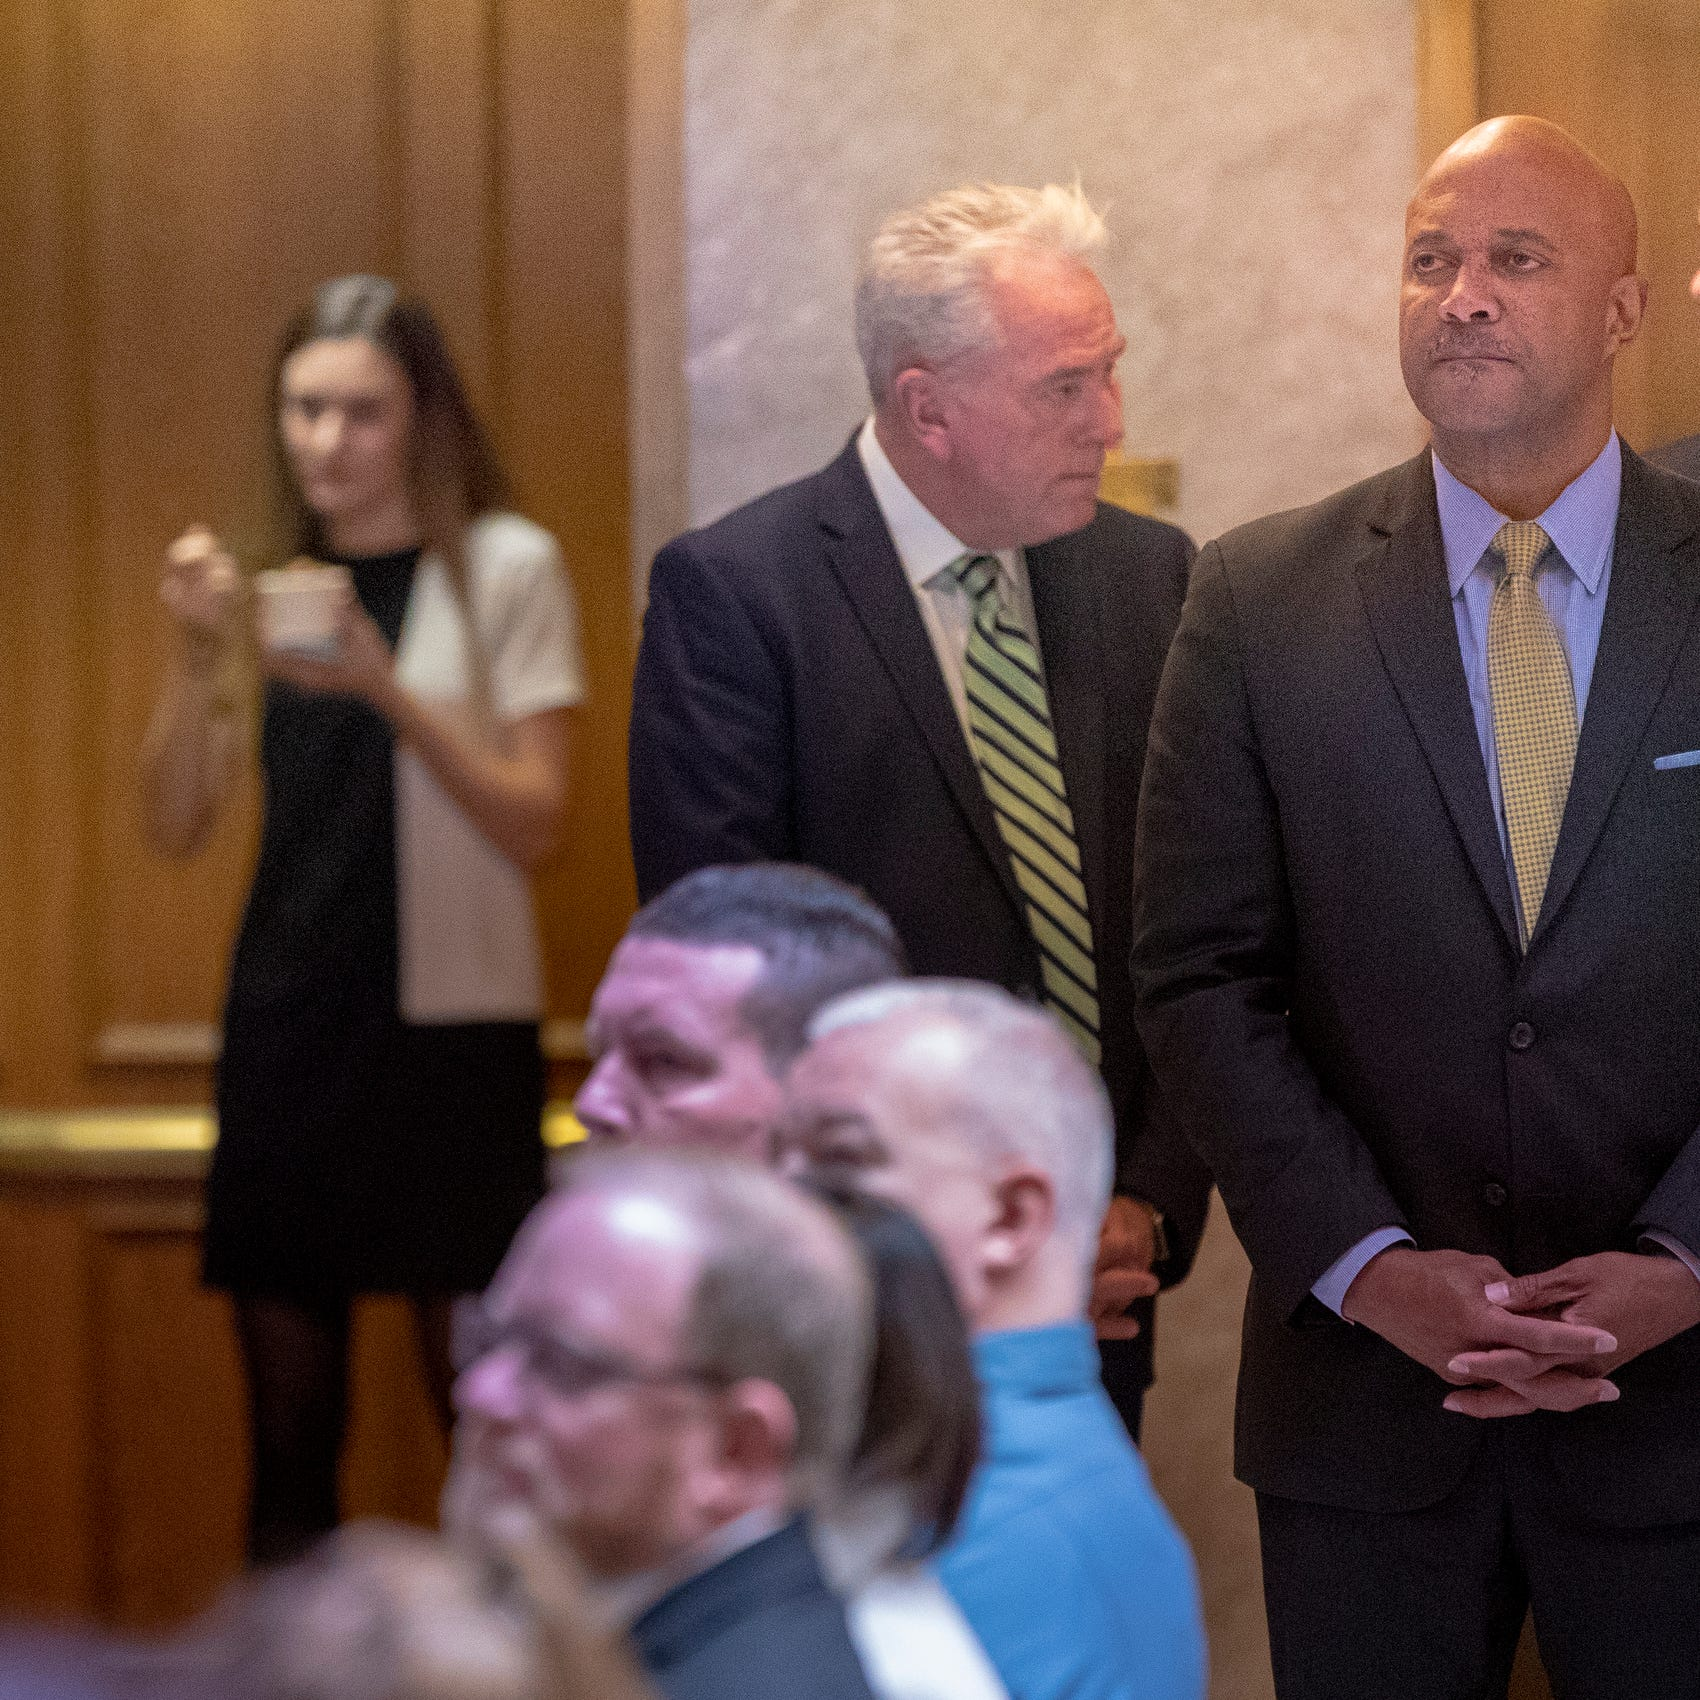 Accuser: Attorney General Curtis Hill's Statehouse meet and greet was 'slap in the face'